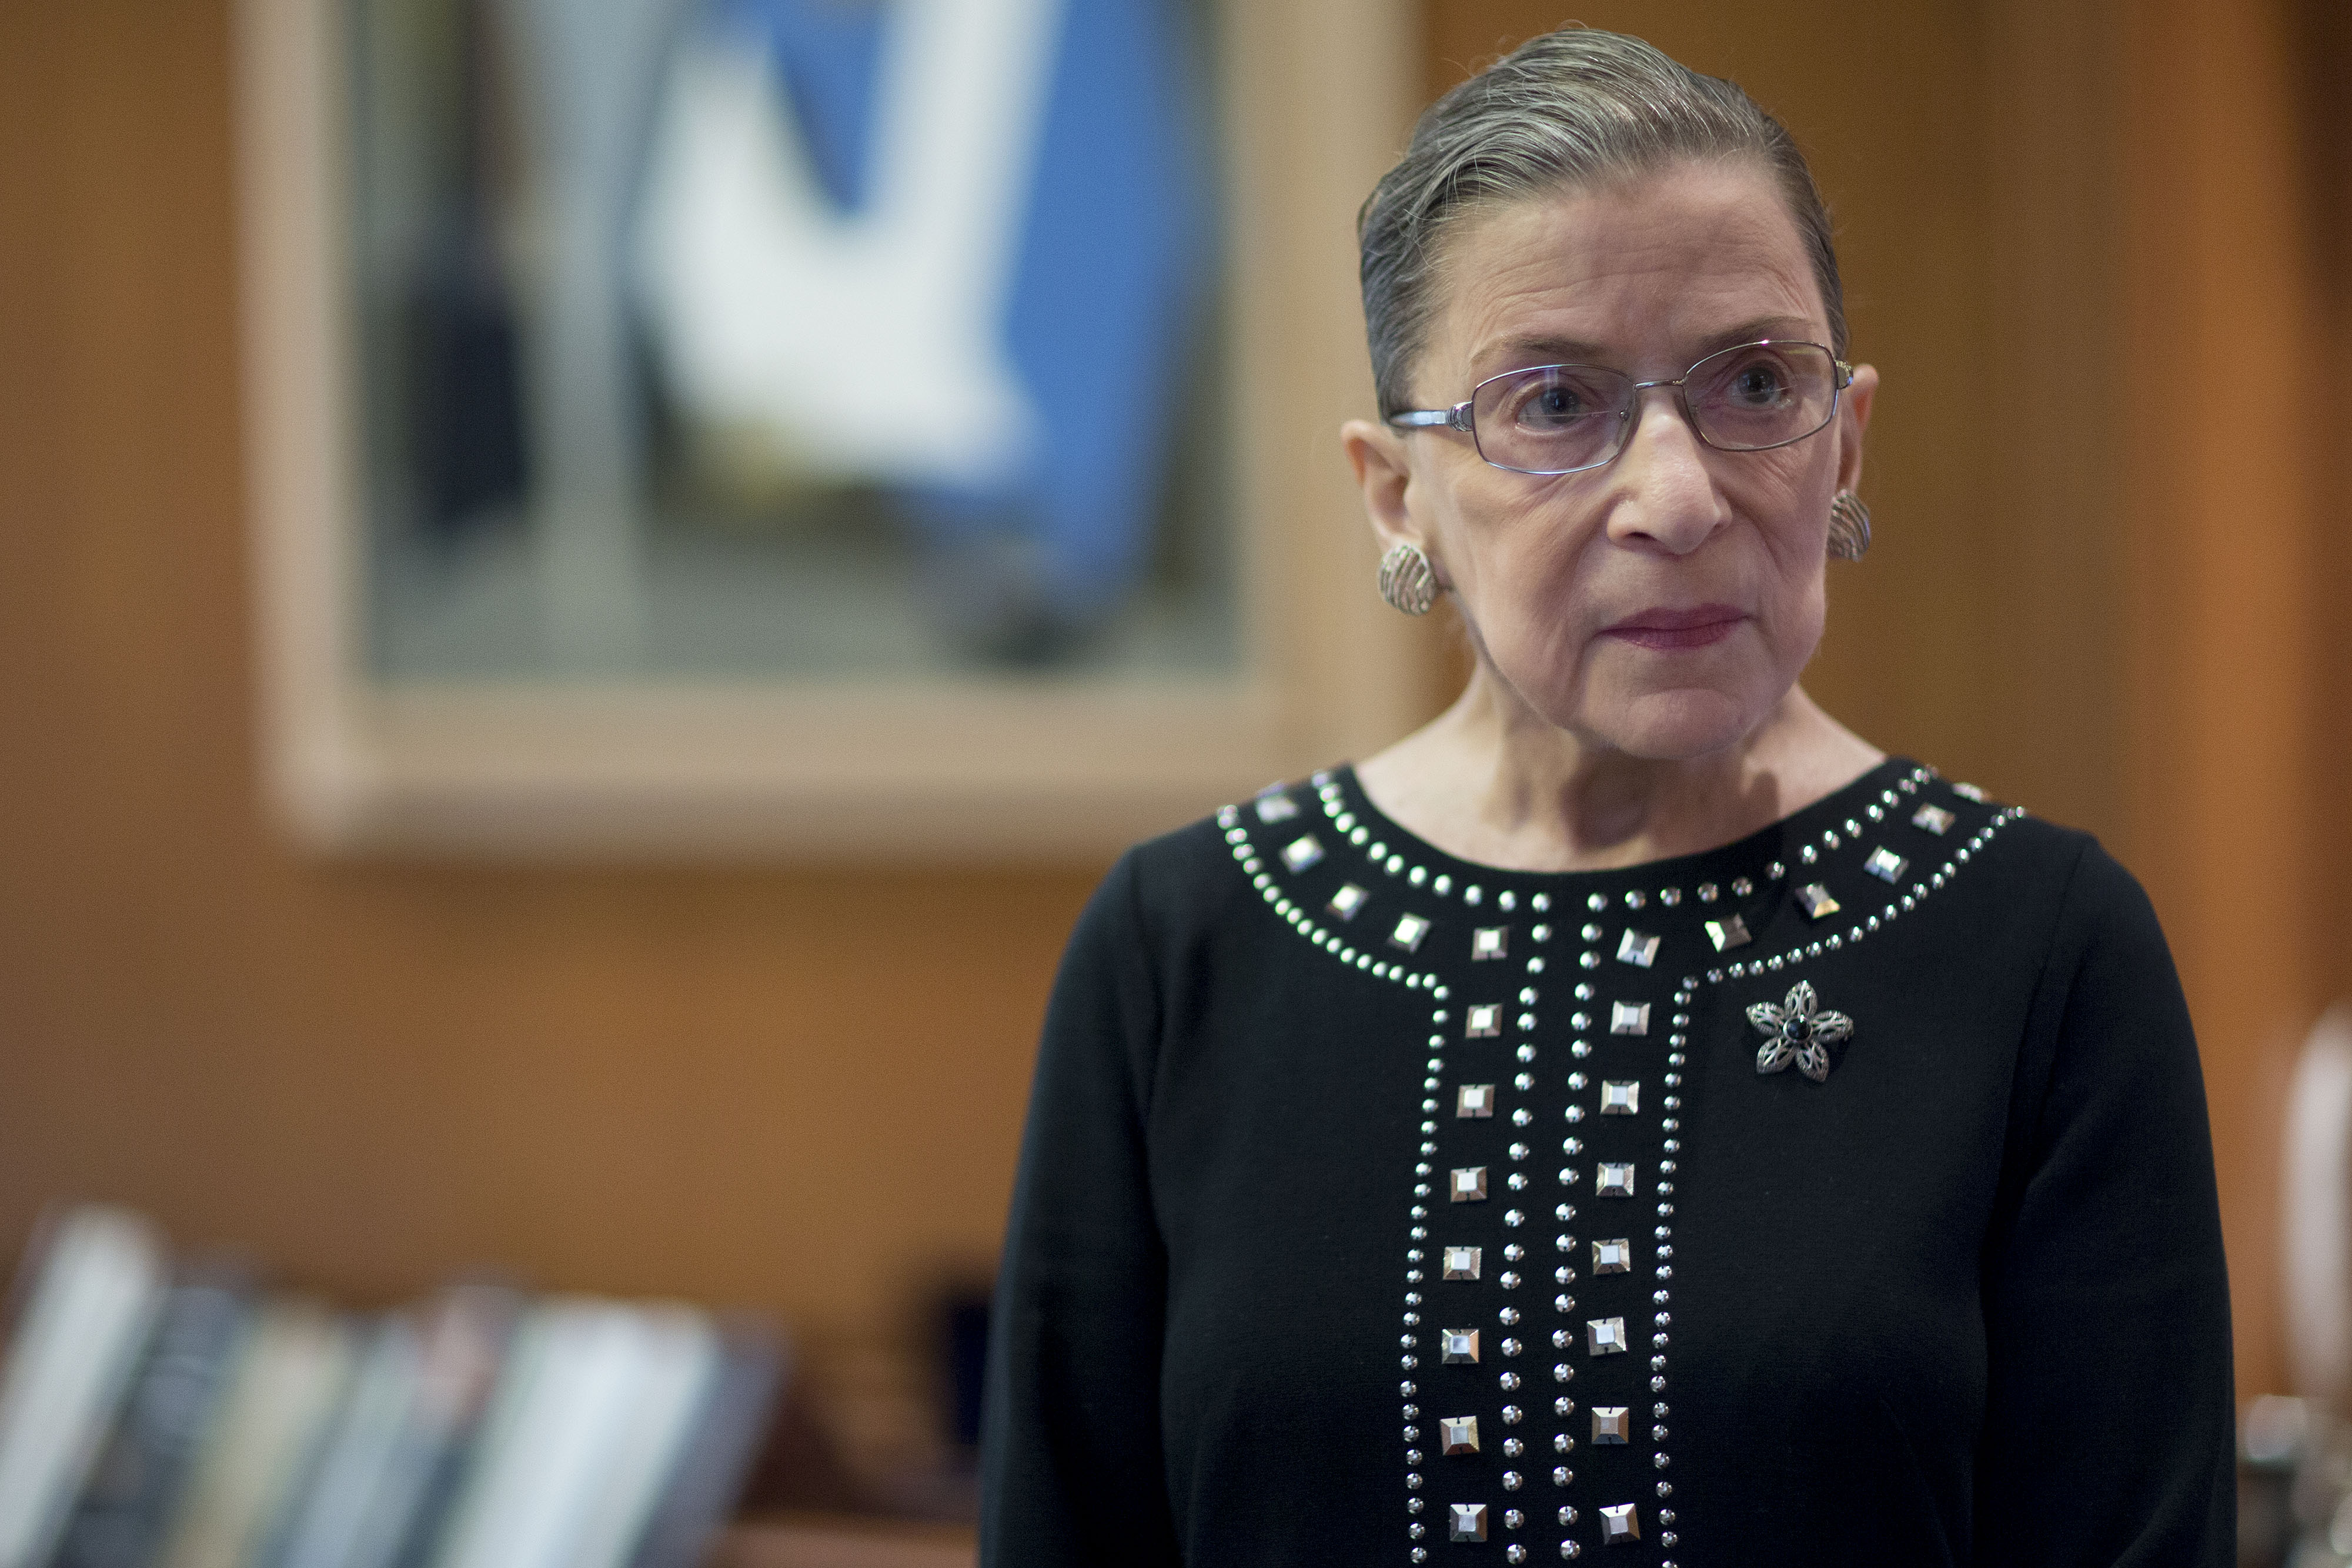 U.S. Supreme Court Associate Justice Ruth Bader Ginsburg Interview